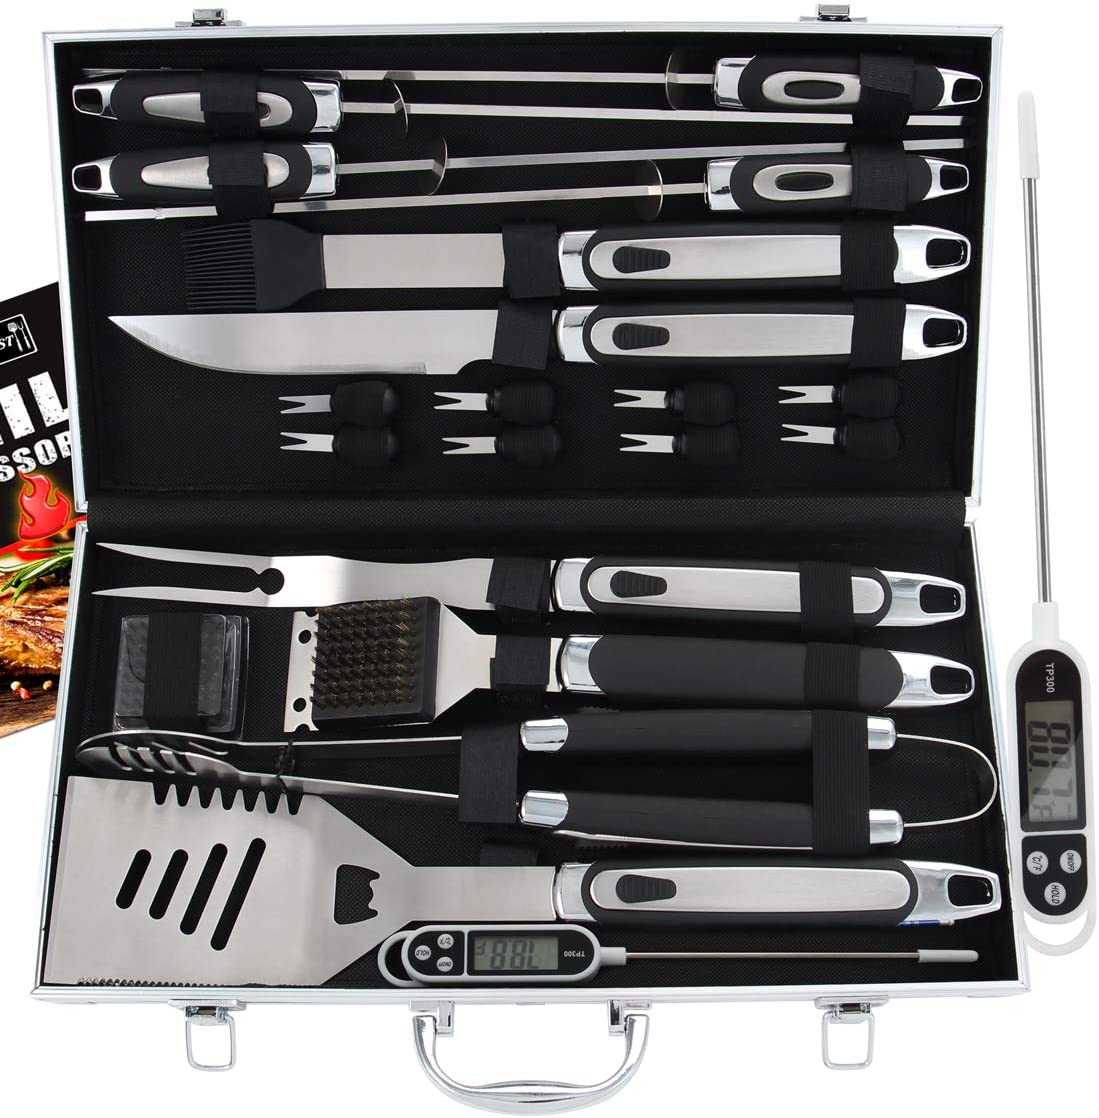 Best Grilling Accessories for the Experts: Romanticist 21pc BBQ Grill Accessories